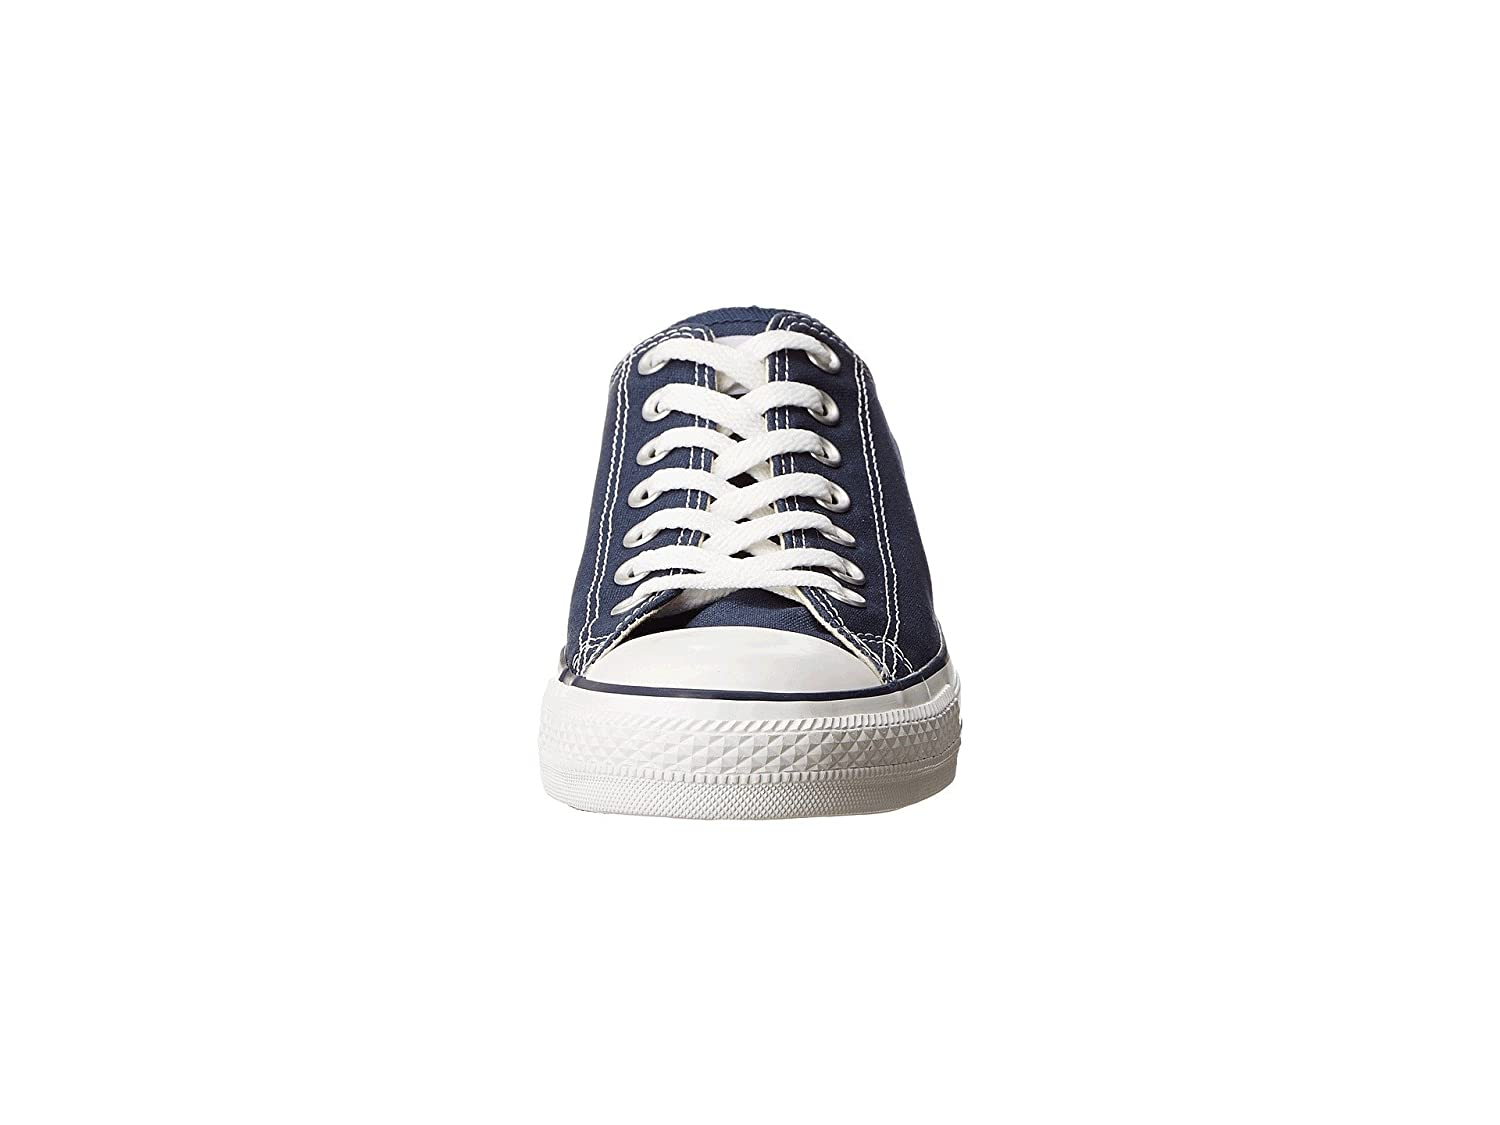 Converse Chuck Taylor All Star Ox Navy Size: 8.5 US Mens